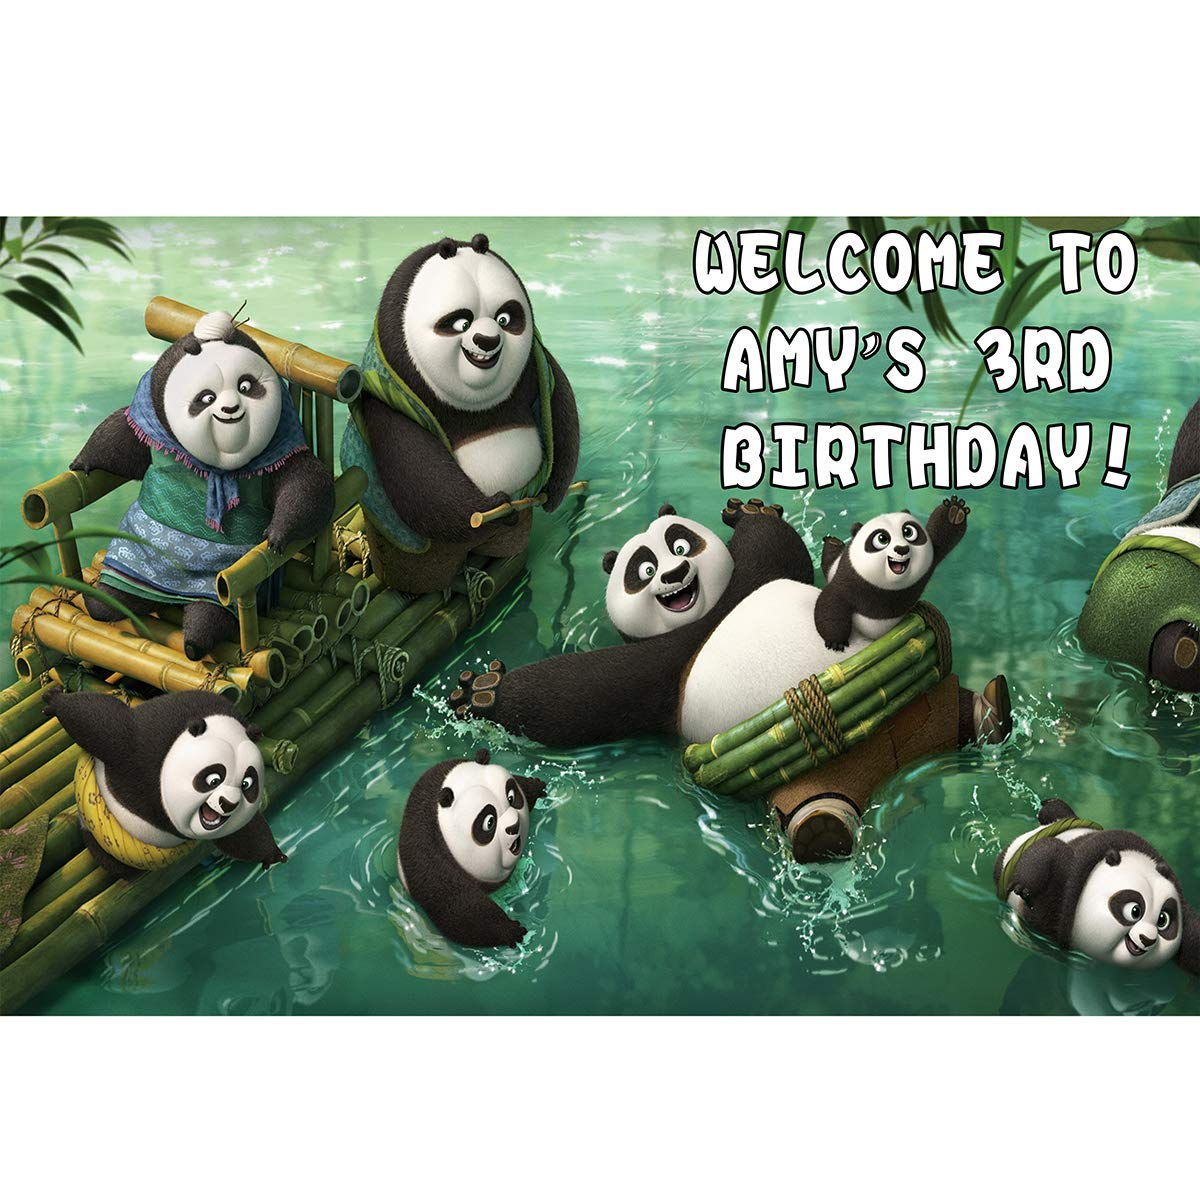 HoRmi Replacement for Kung Fu Panda Party Decoration Supplies Backdrop Customized for Birthday Decor Num605